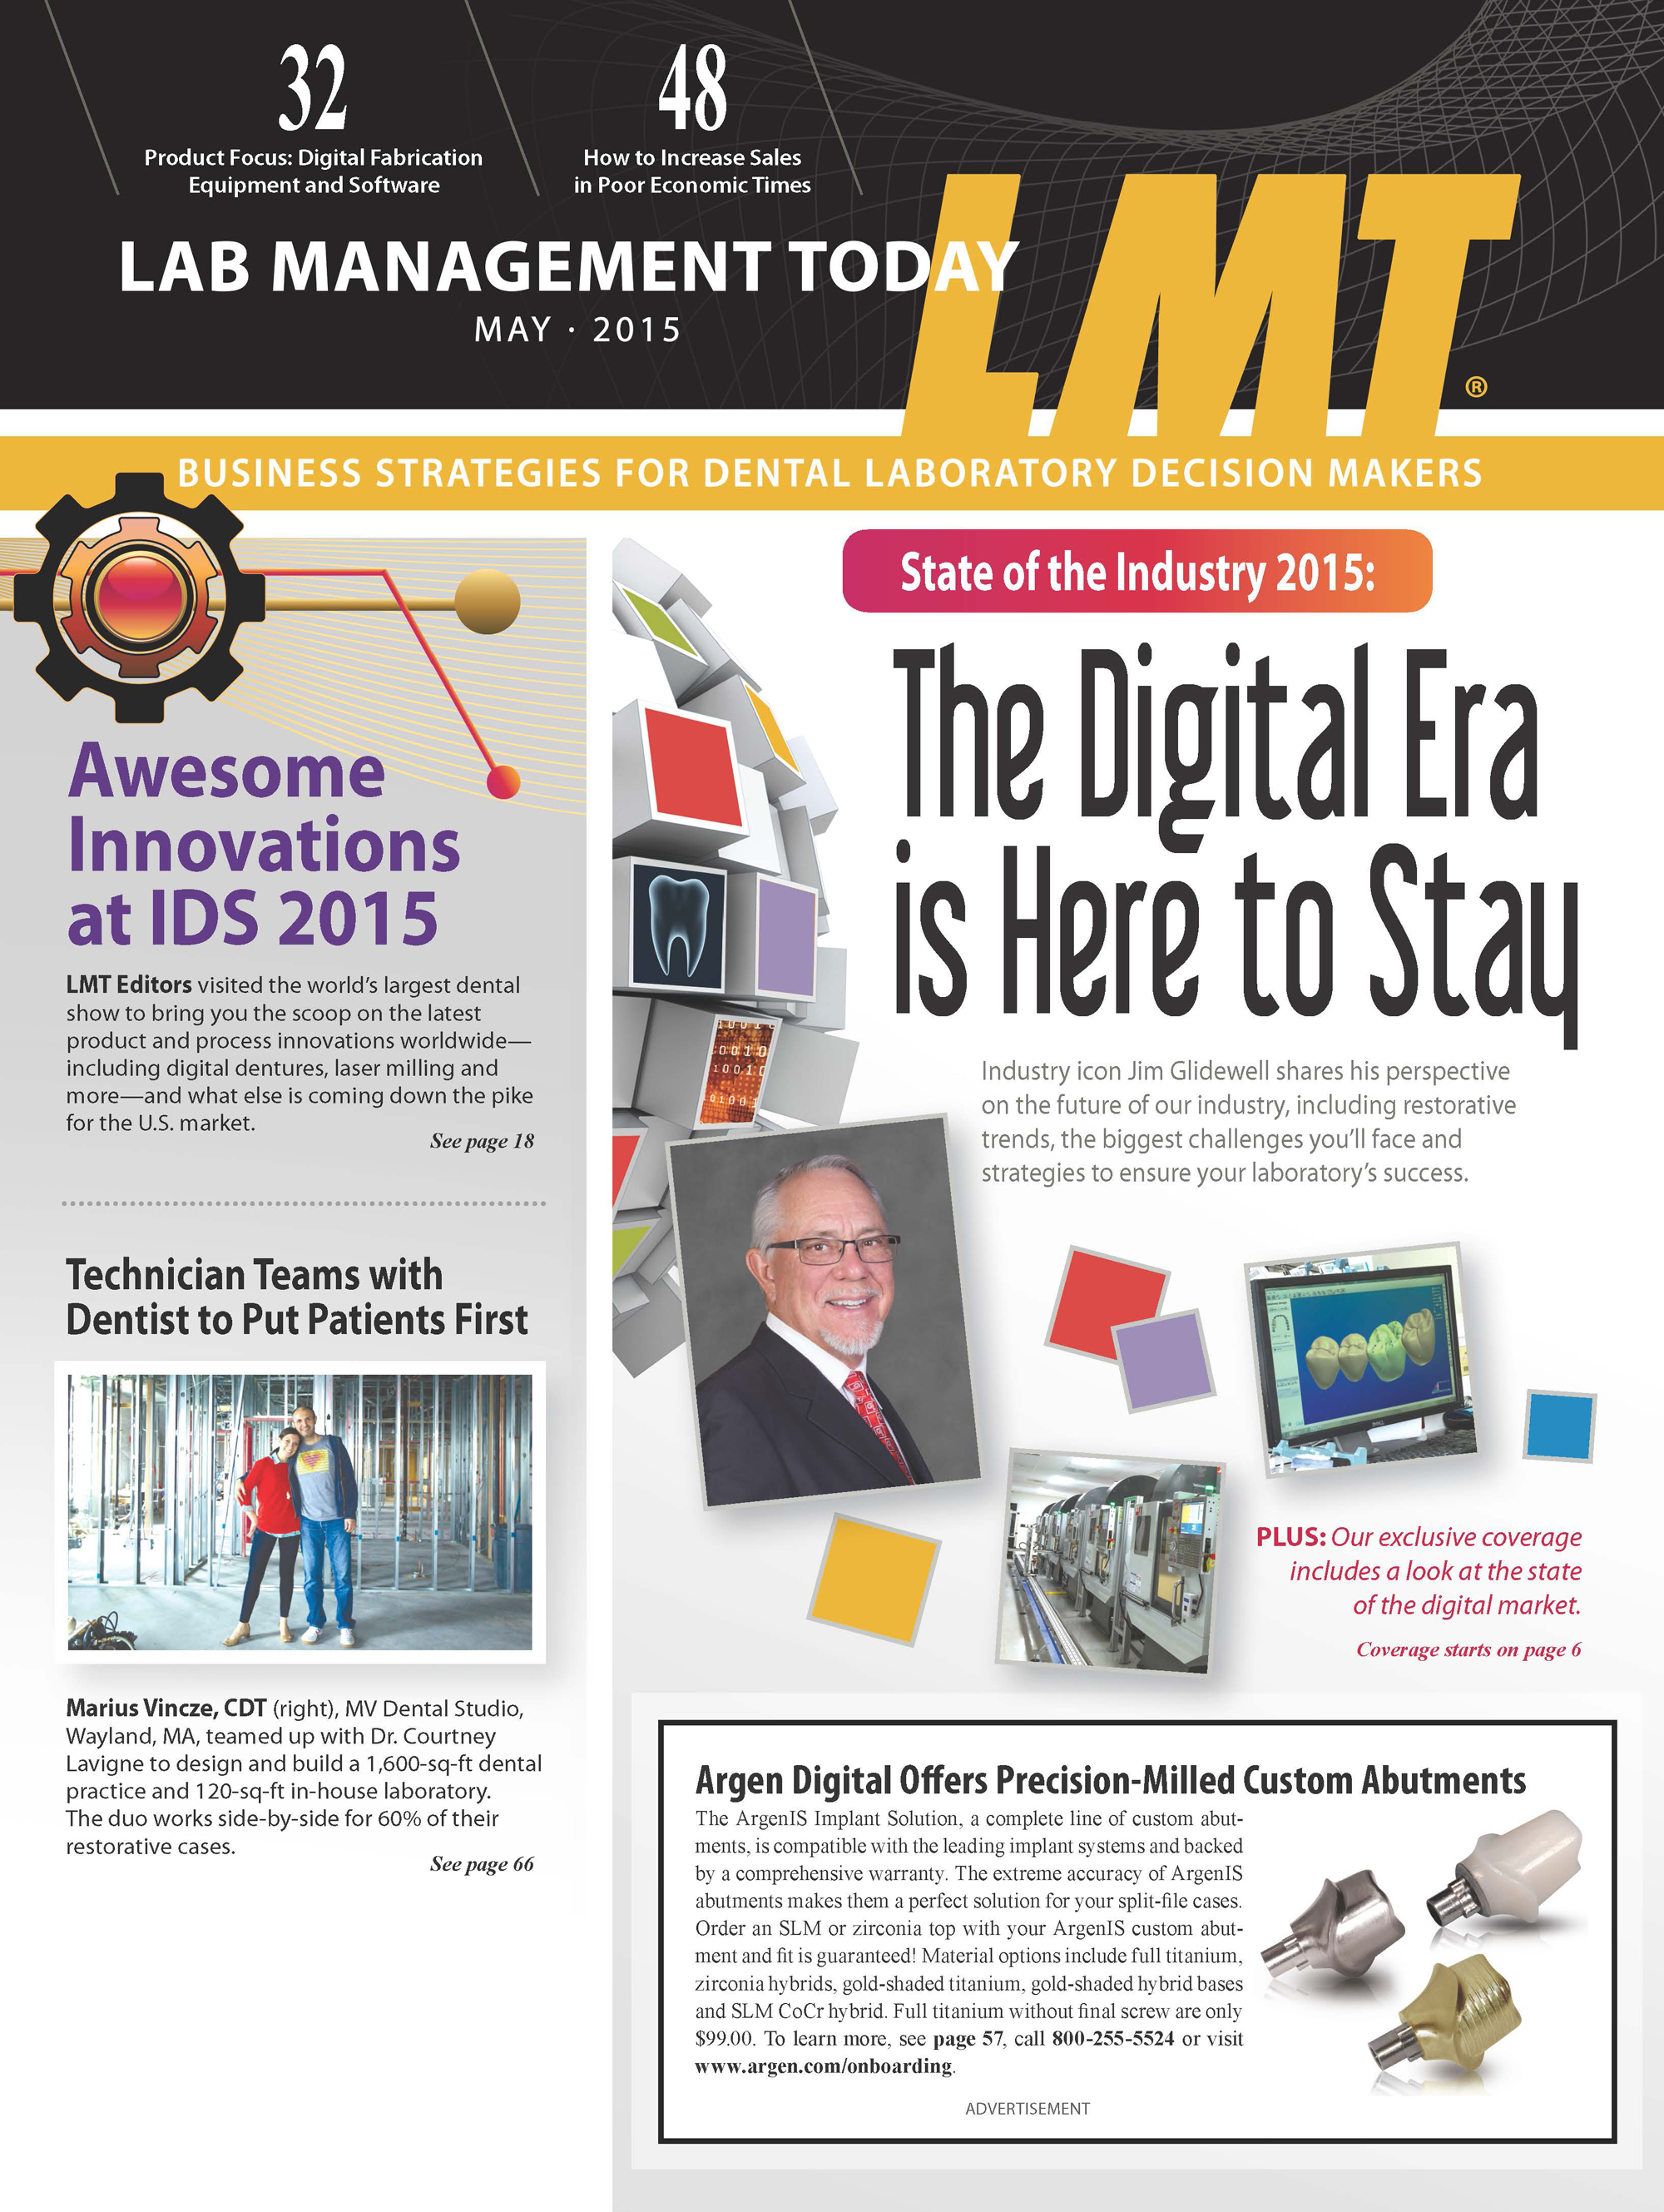 LMTmag | The Digital Era is Here to Stay